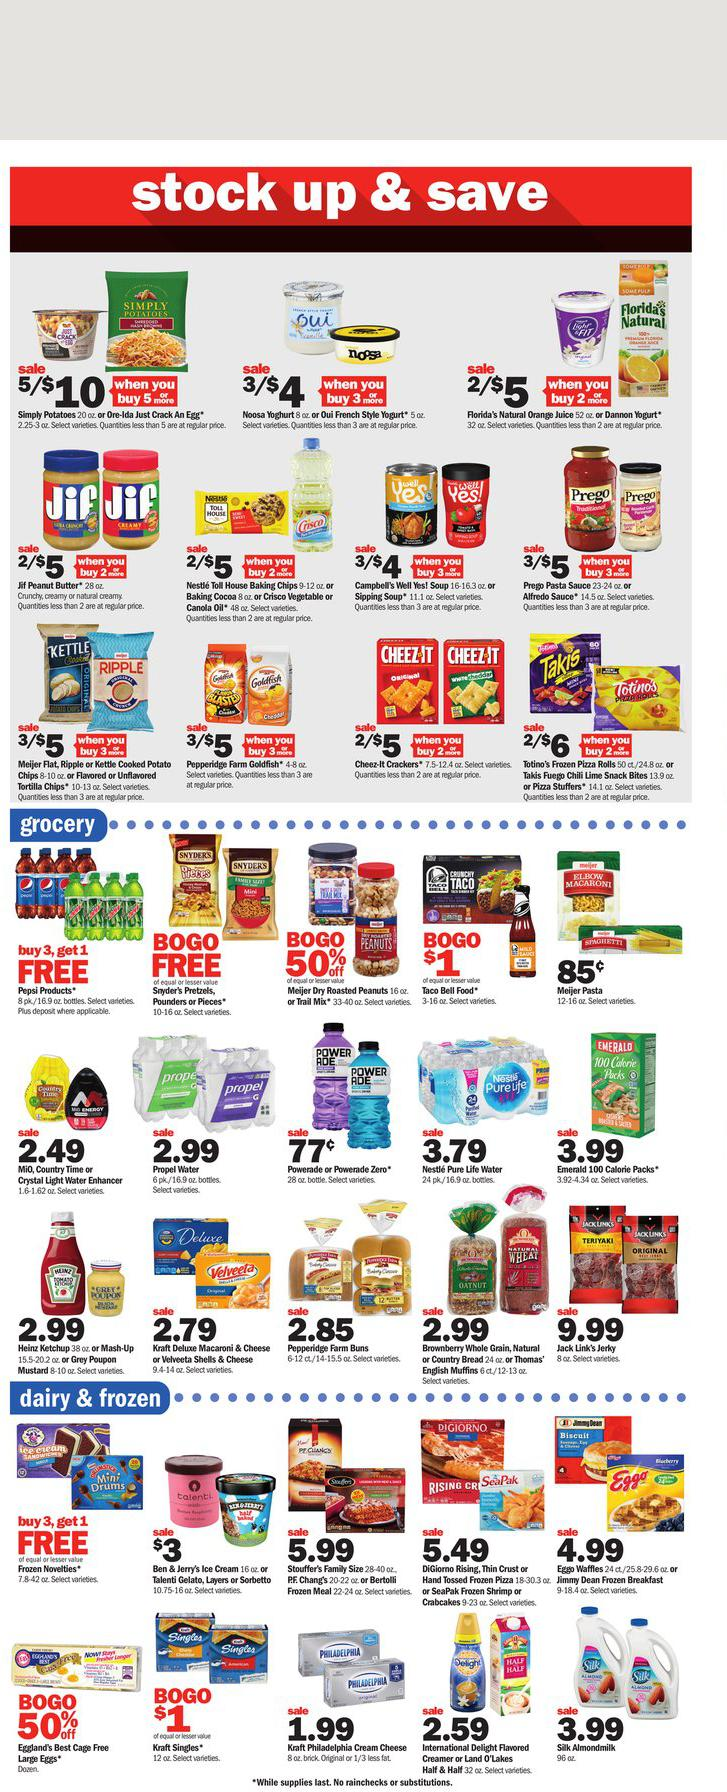 01.08.2021 Meijer ad 3. page